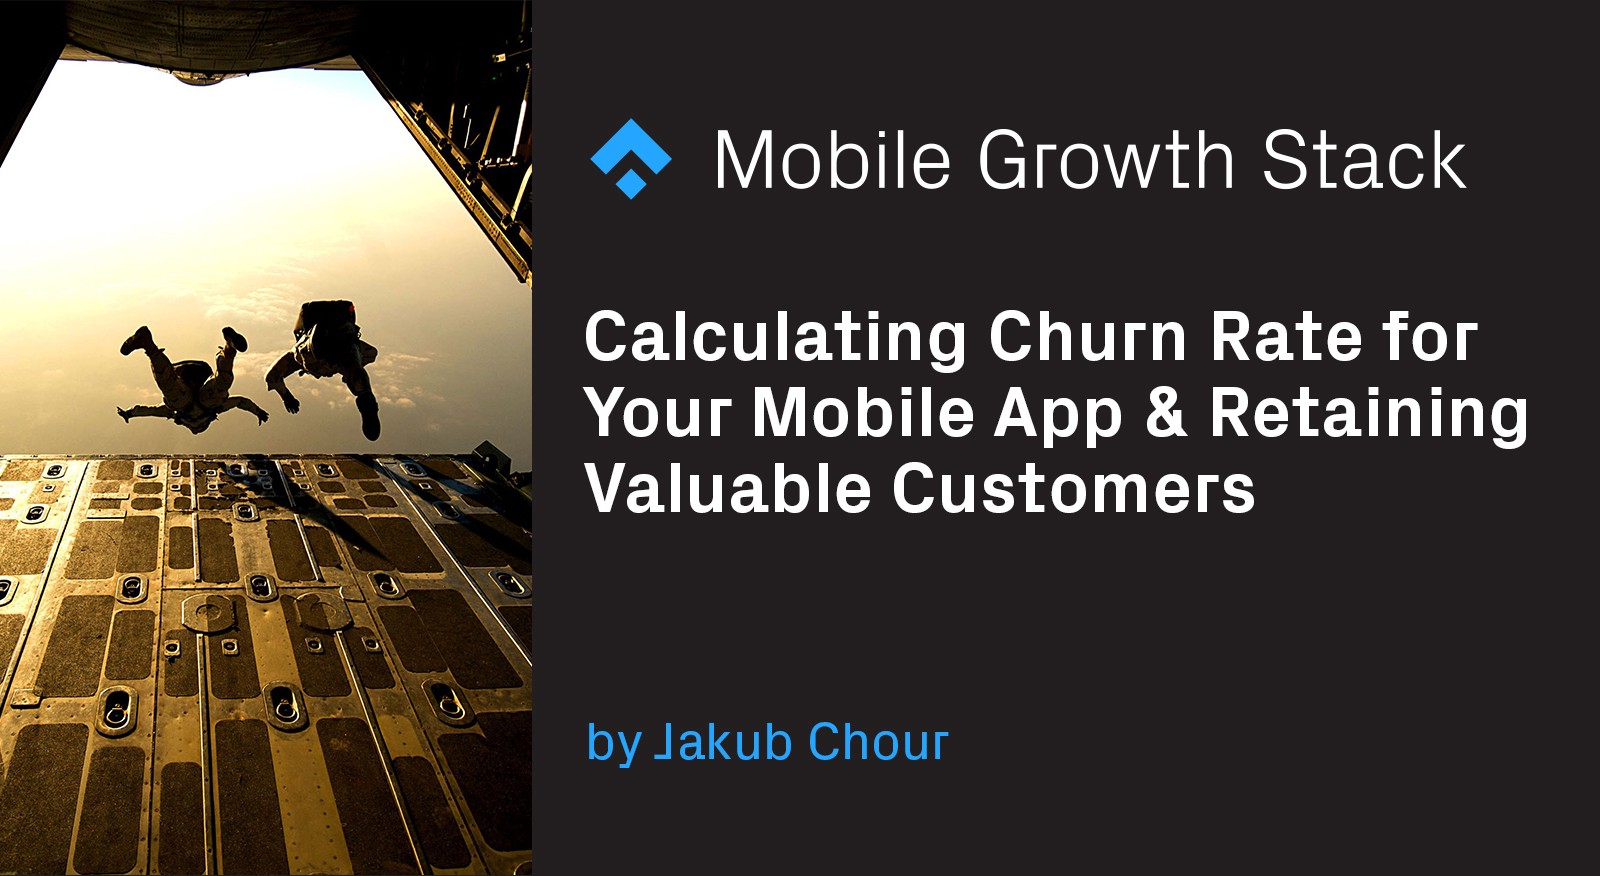 Calculating Churn Rate for Your Mobile App & Retaining Valuable